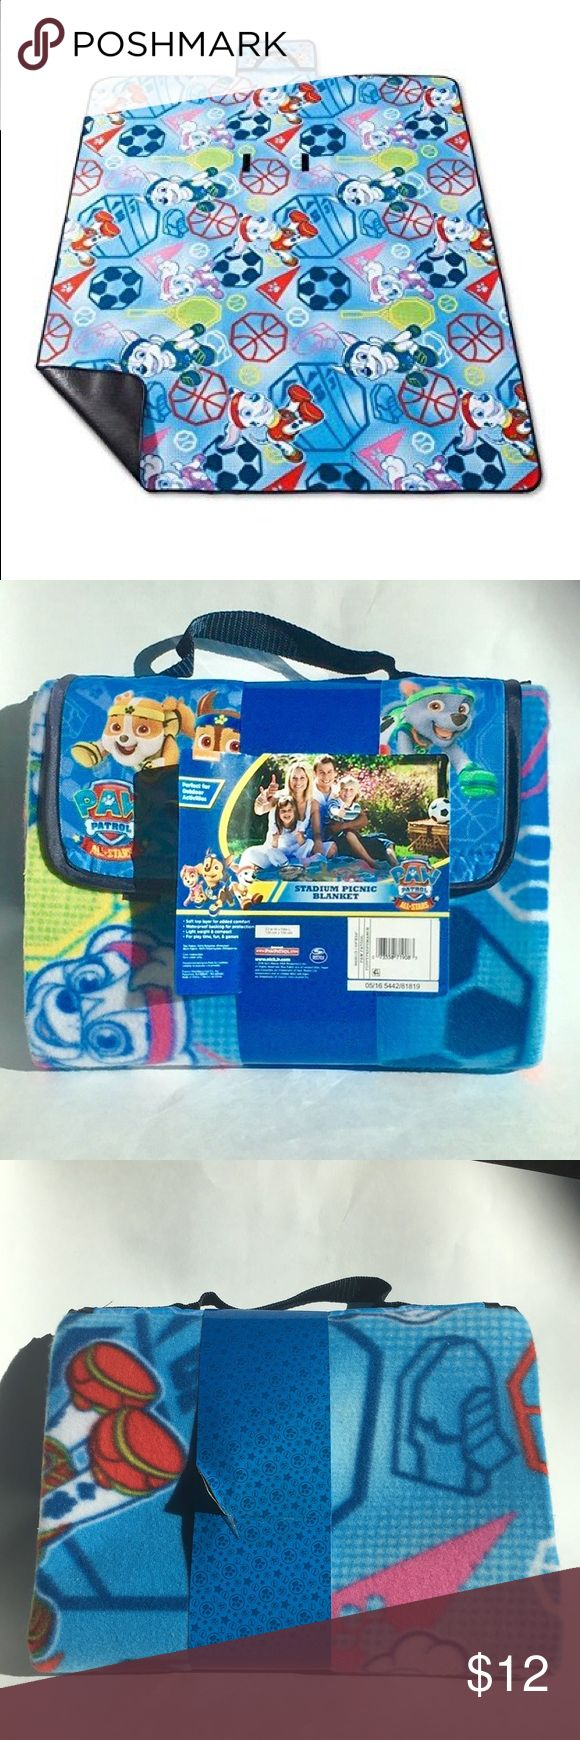 Nick Jr. Paw Patrol Blanket Paw Patrol Stadium Picnic Blanket. Soft top layer for added comfort. Waterproof backing for protection. Light weight & compact. For play time, fun, & games. Nickelodeon Other